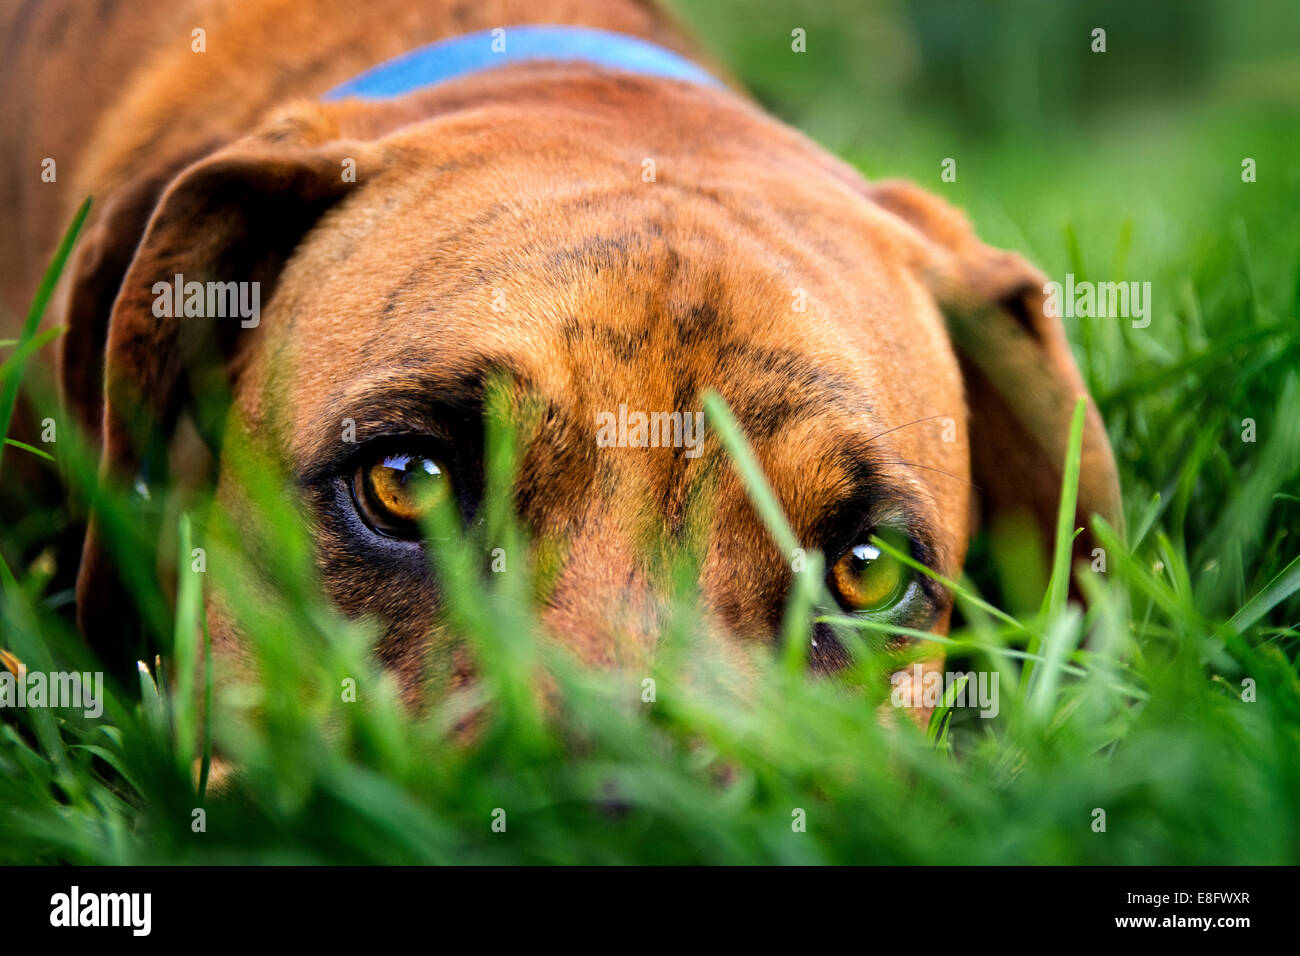 Dog resting in grass Photo Stock